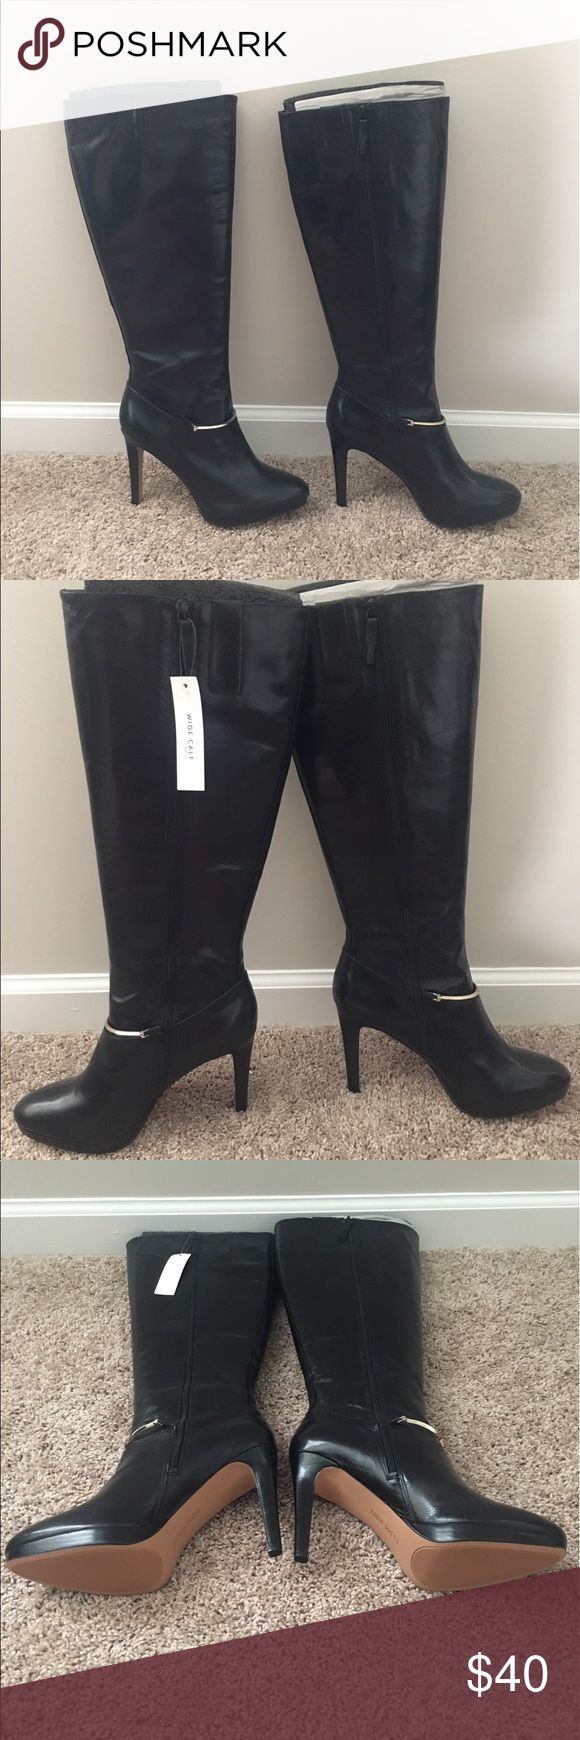 Size 10 Nine West tall wide calf boot w/gold strap Black leather Nine West tall wide calf boots. Gold strap across ankle. Never wore or used. New. Size 10. No box. Platform heel. Nine West Shoes Heeled Boots